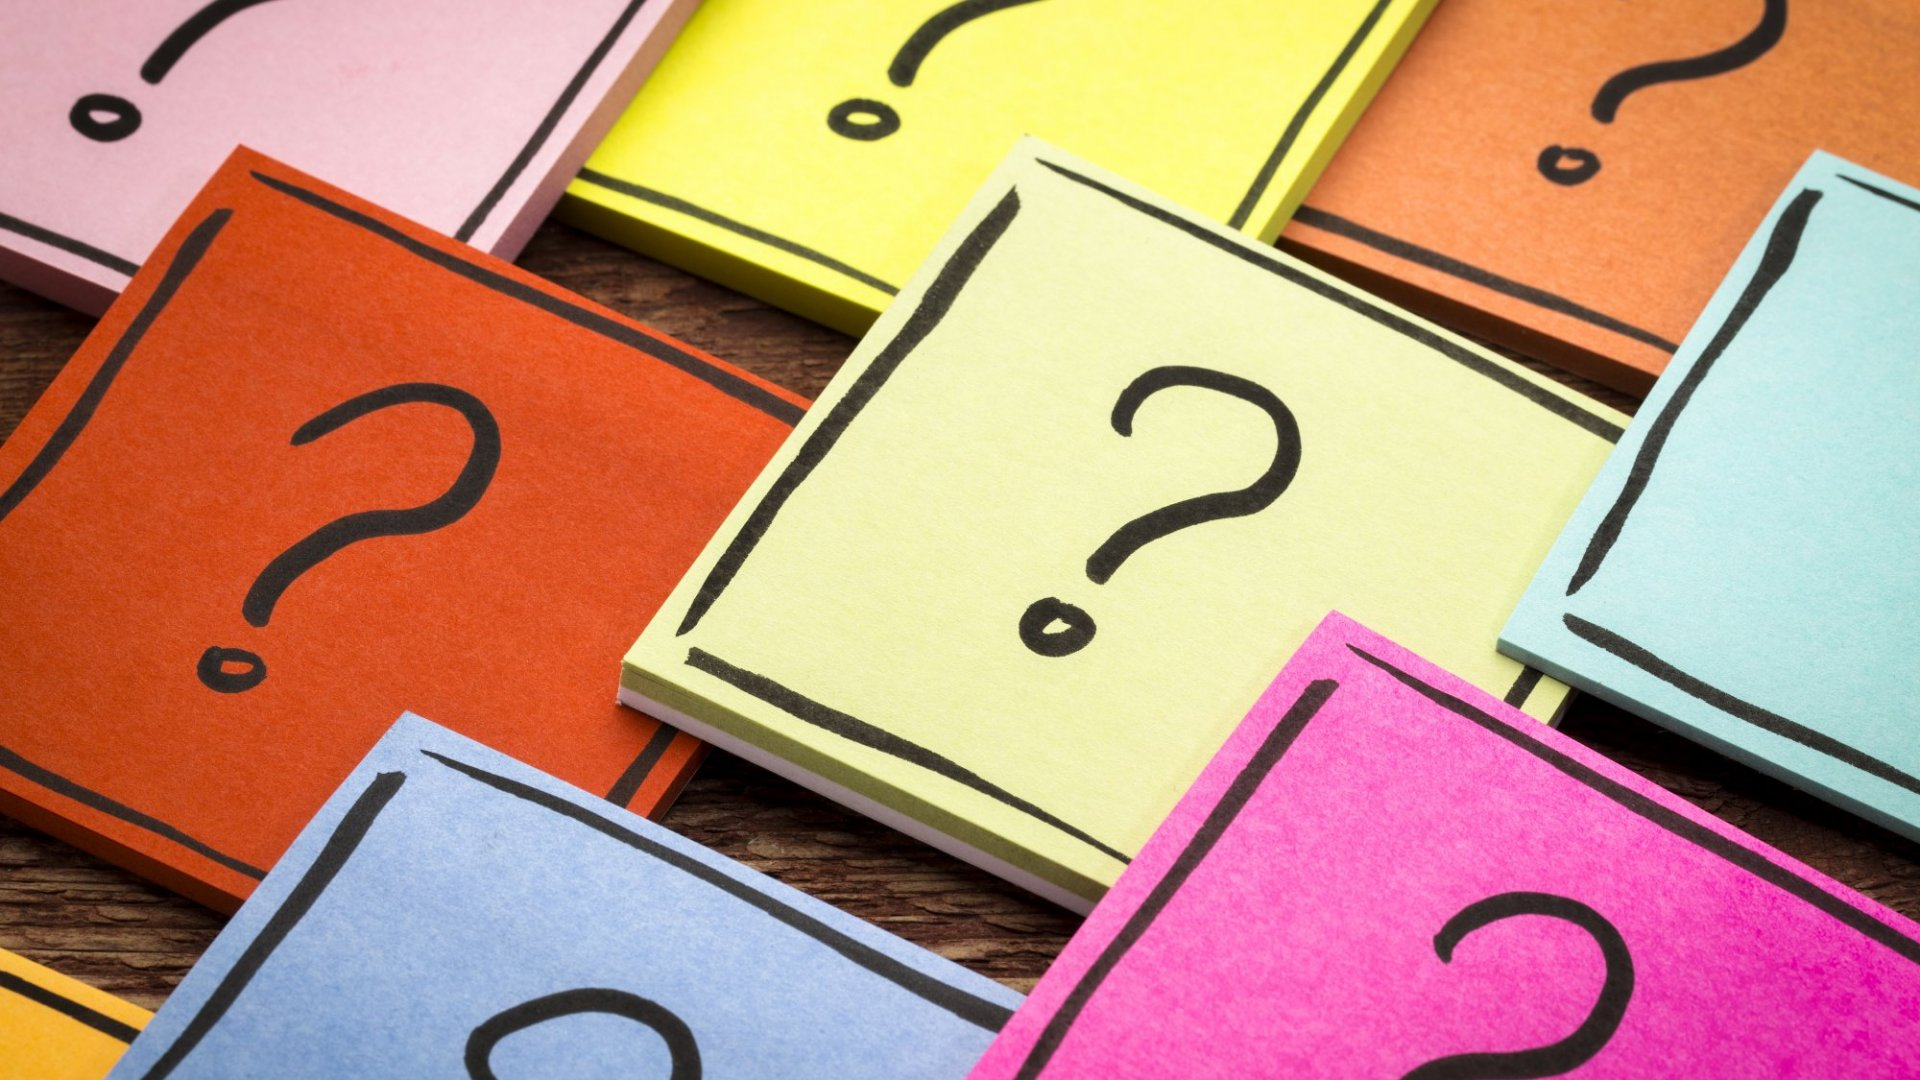 The Right Questions Can Launch You Forward. Here's Why Most People Don't Ask Them